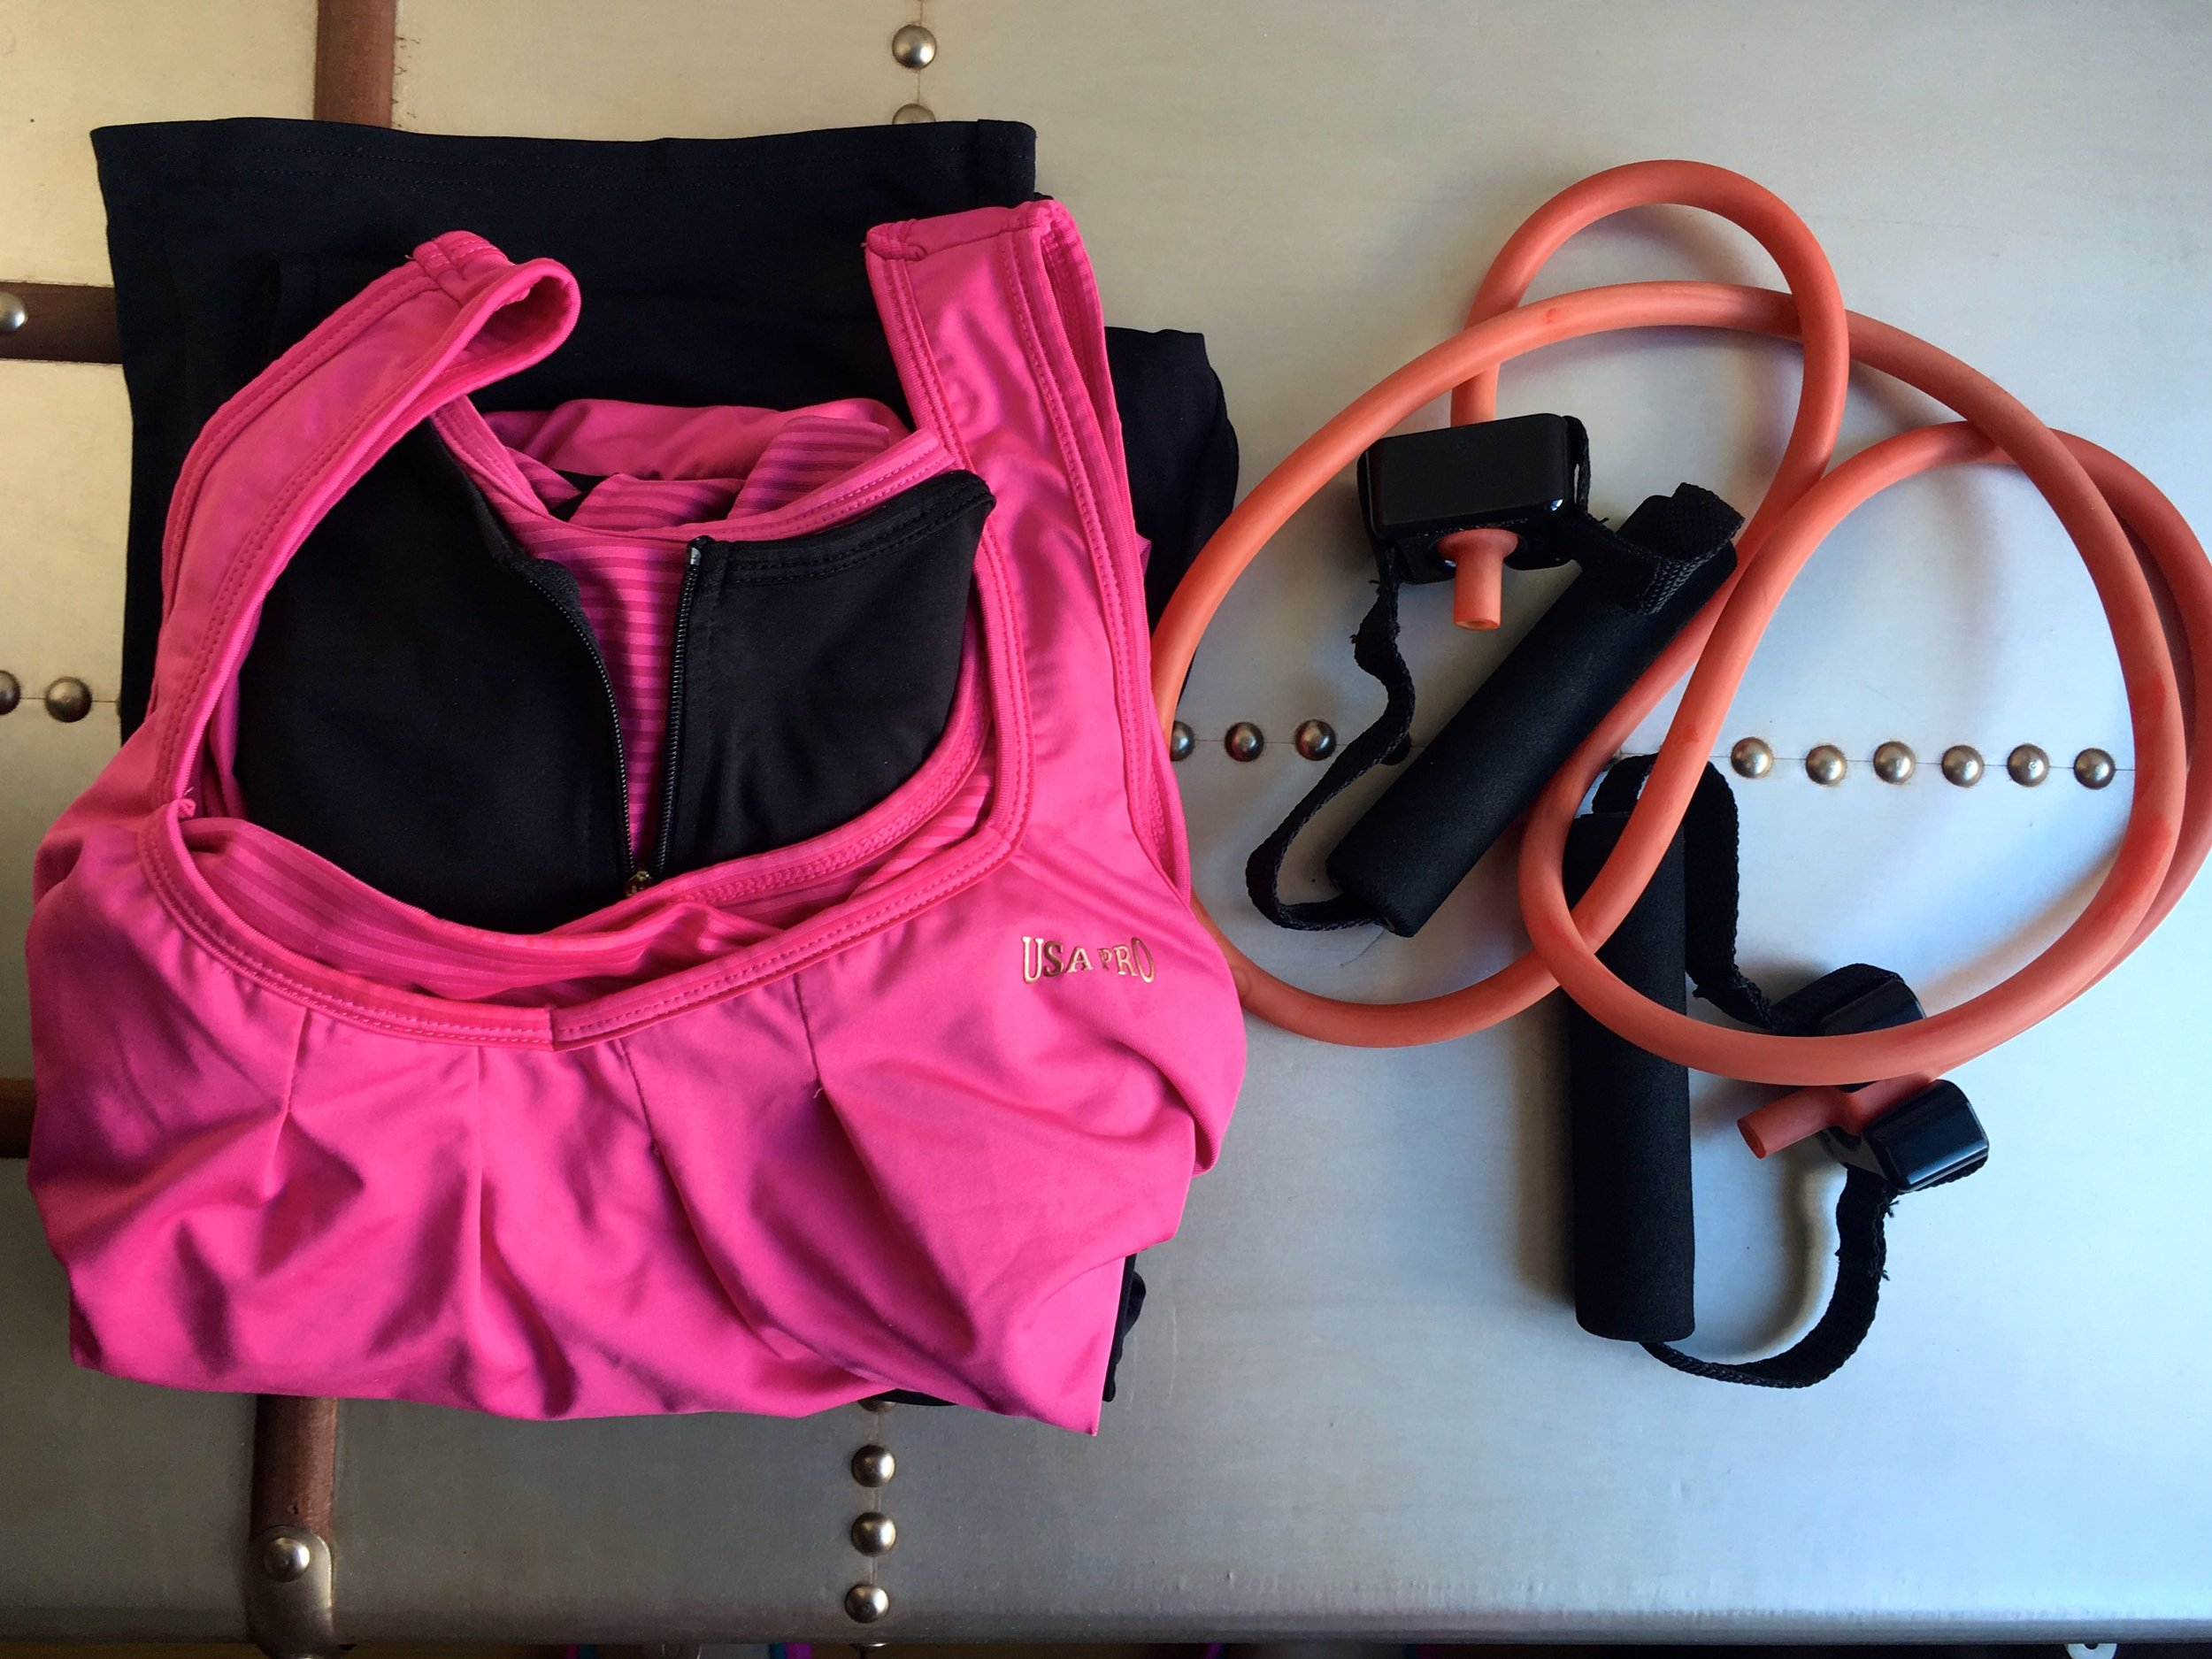 exercise gear ready for use